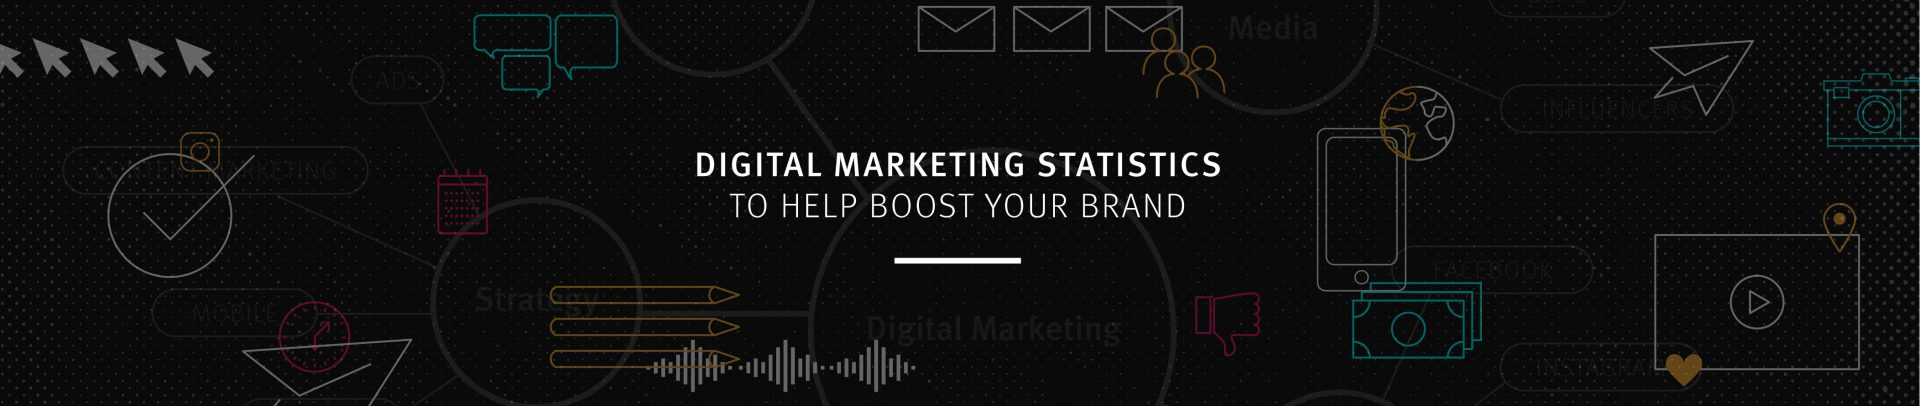 Digital marketing statistics to boost your brand.